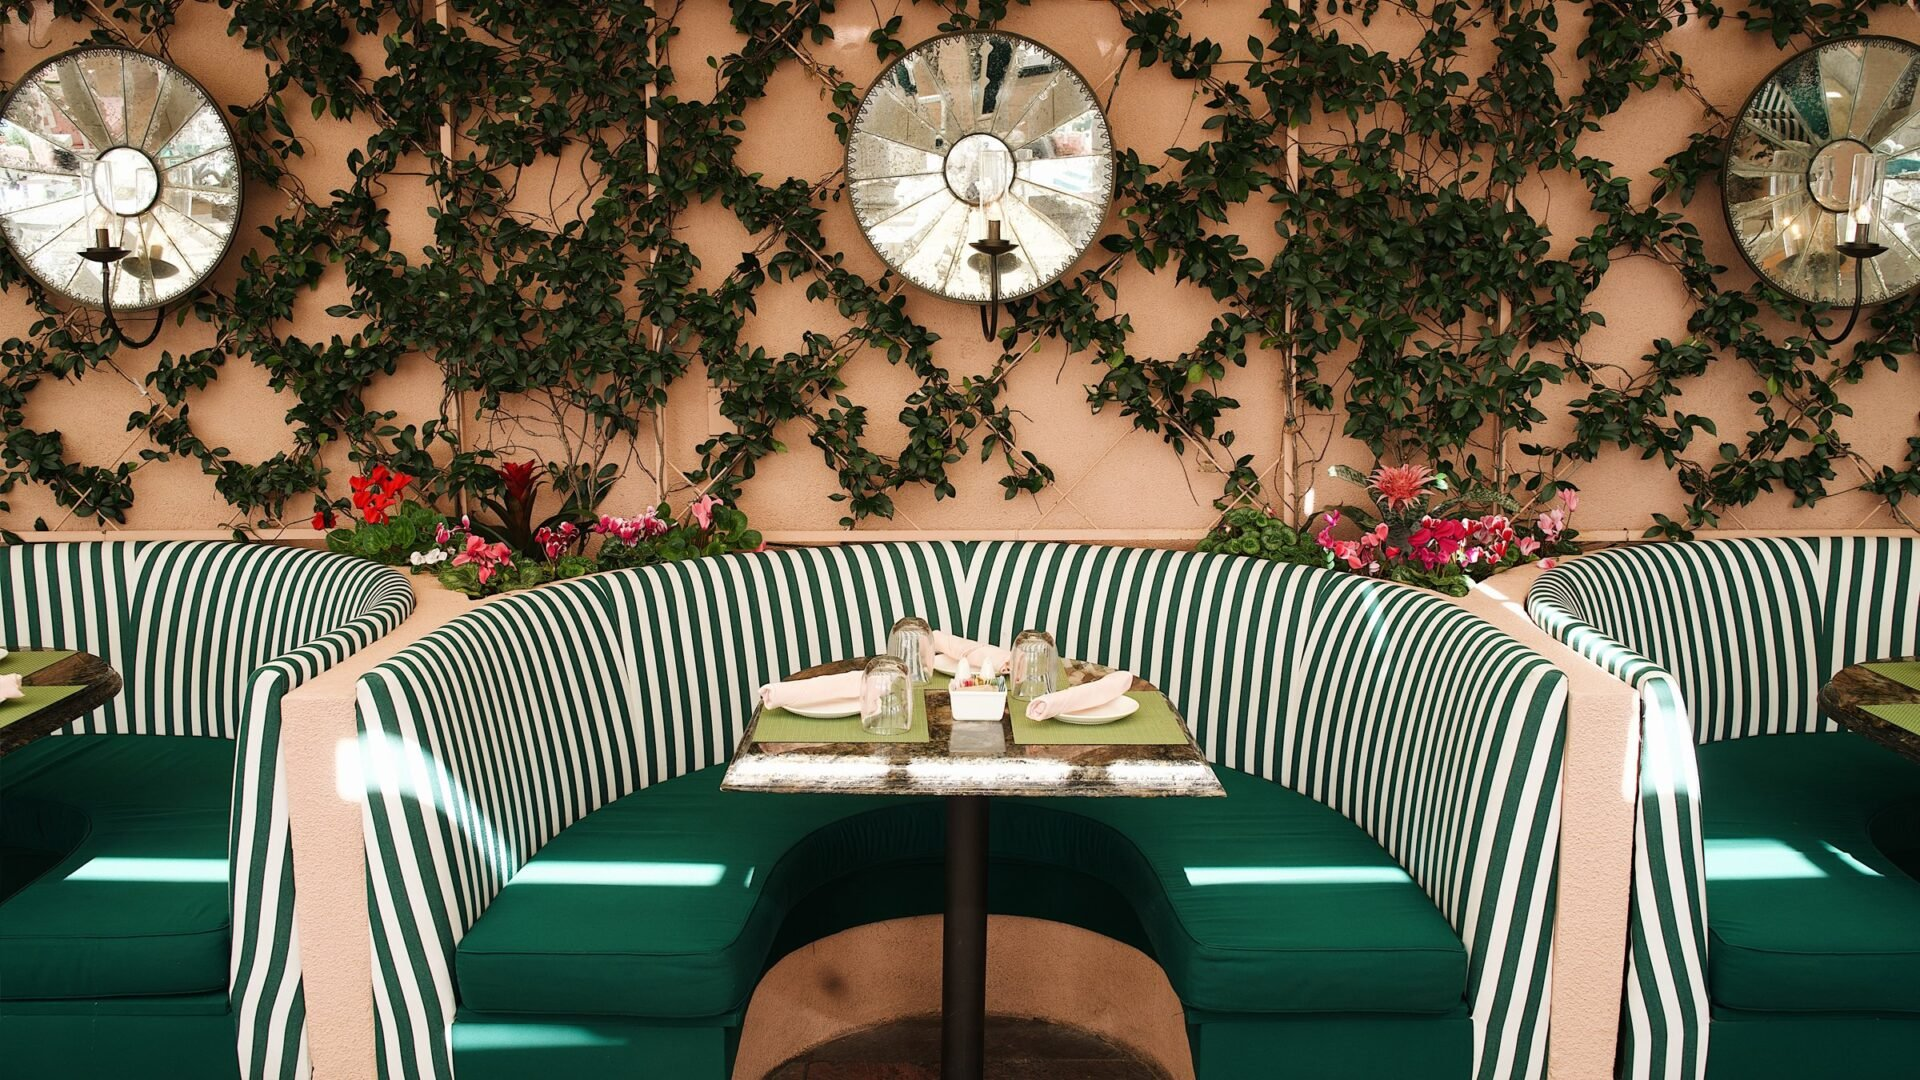 White and green table at Cabana Cafe